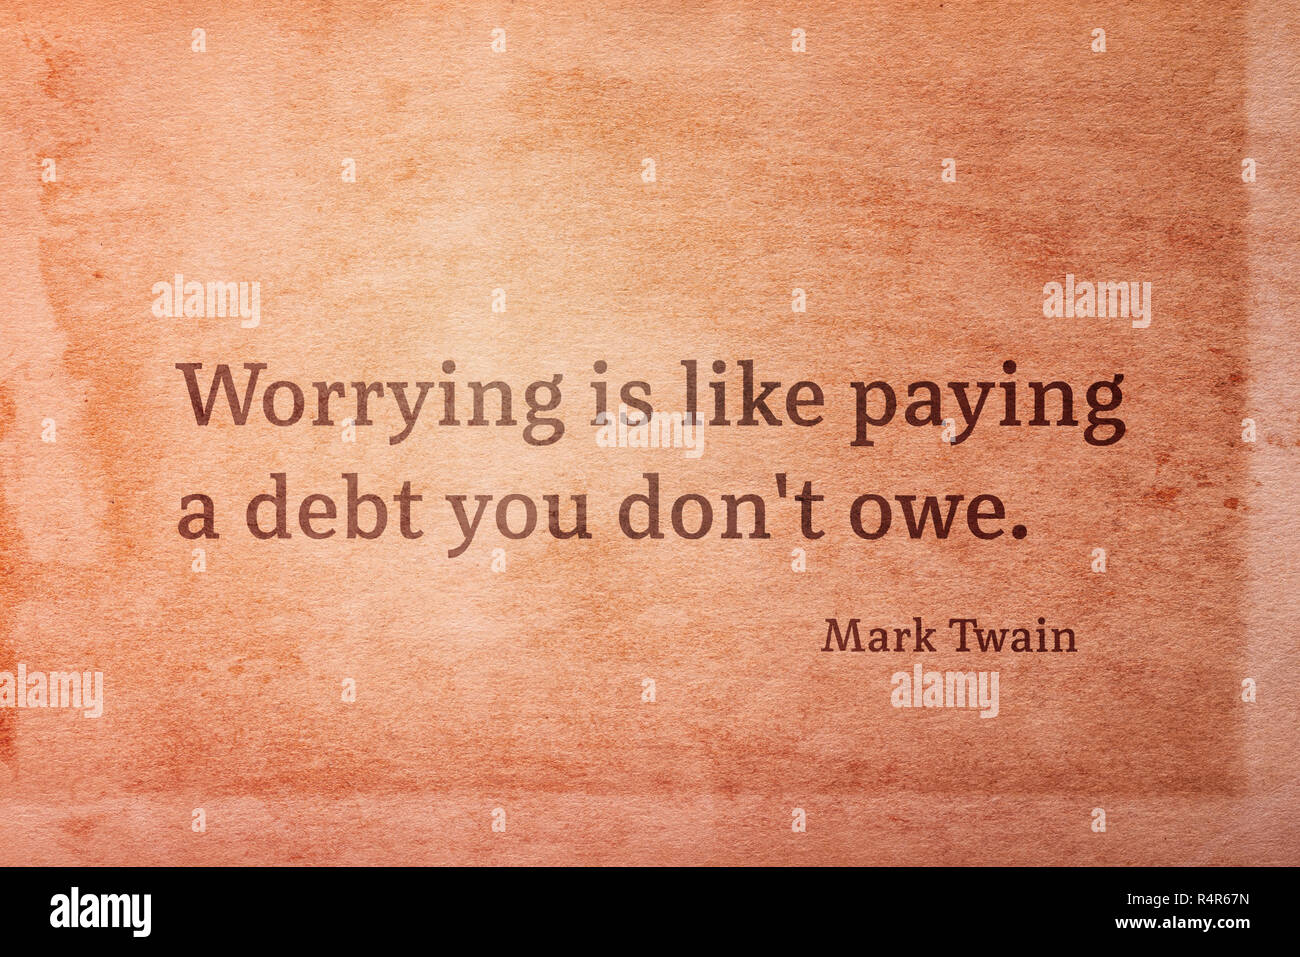 Worrying is like paying a debt you don't owe - famous American writer Mark Twain quote printed on vintage grunge paper - Stock Image